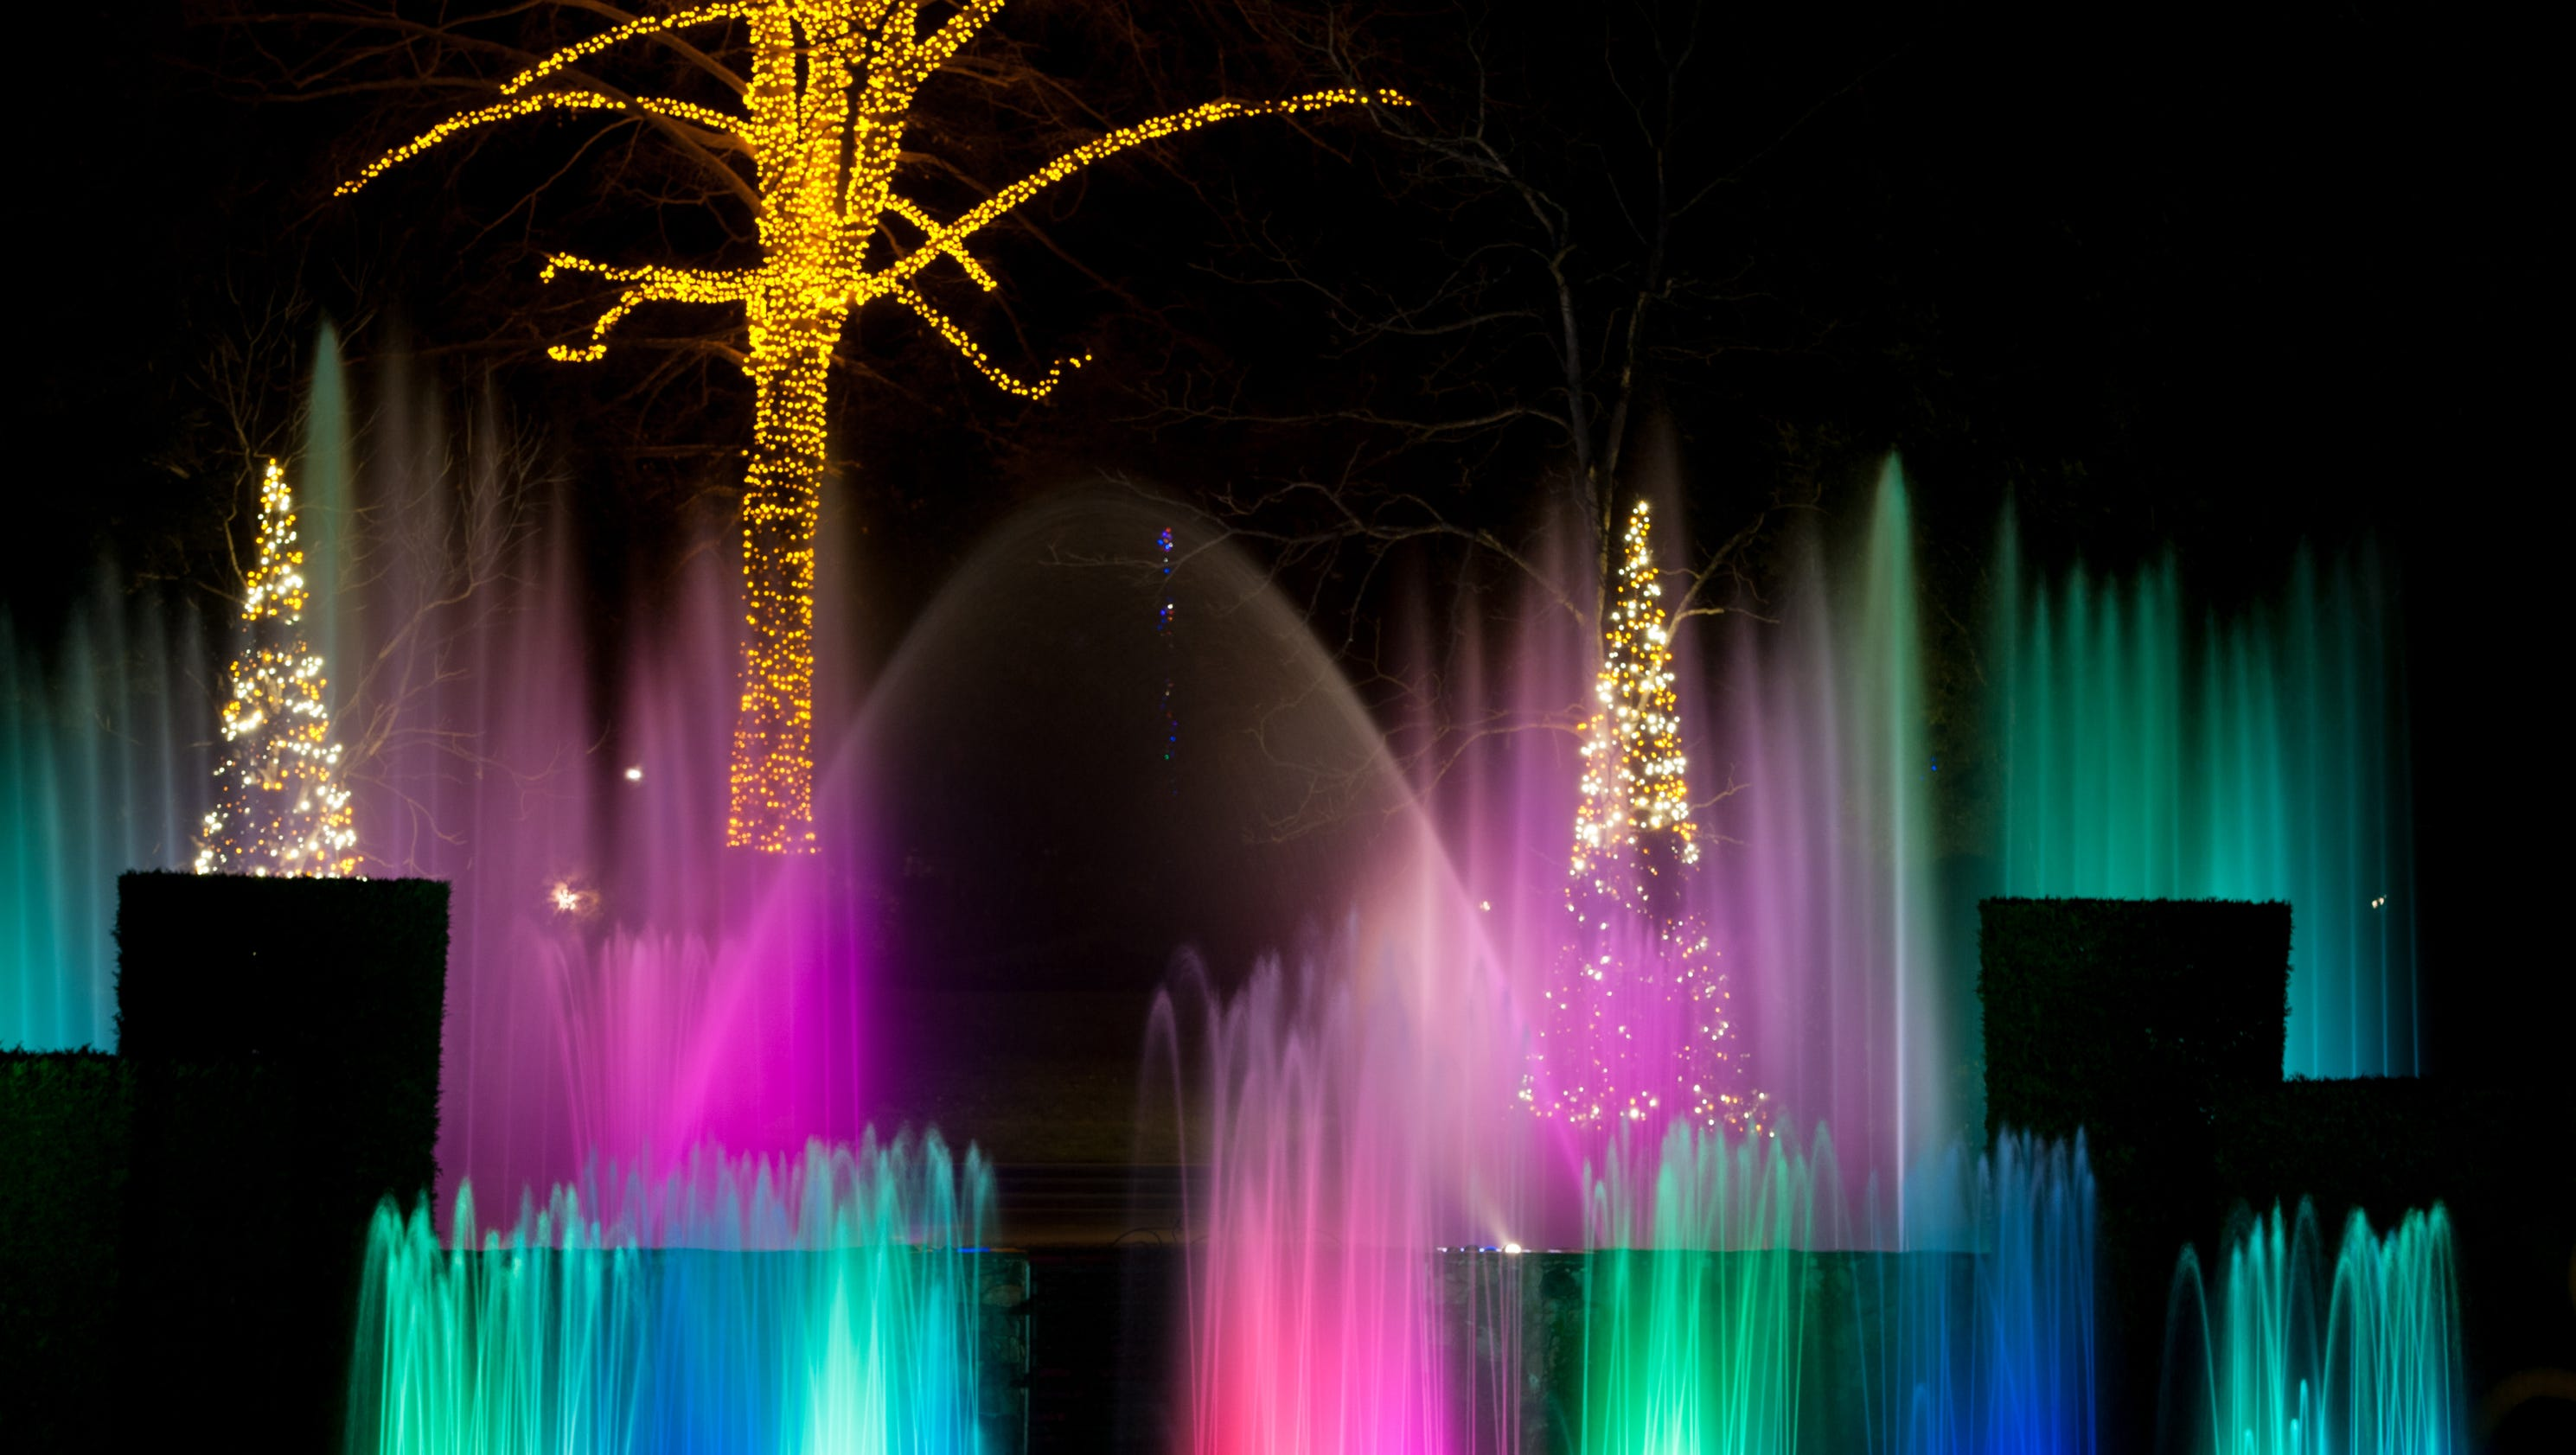 Day 1 win tickets to longwood gardens for Longwood gardens tickets